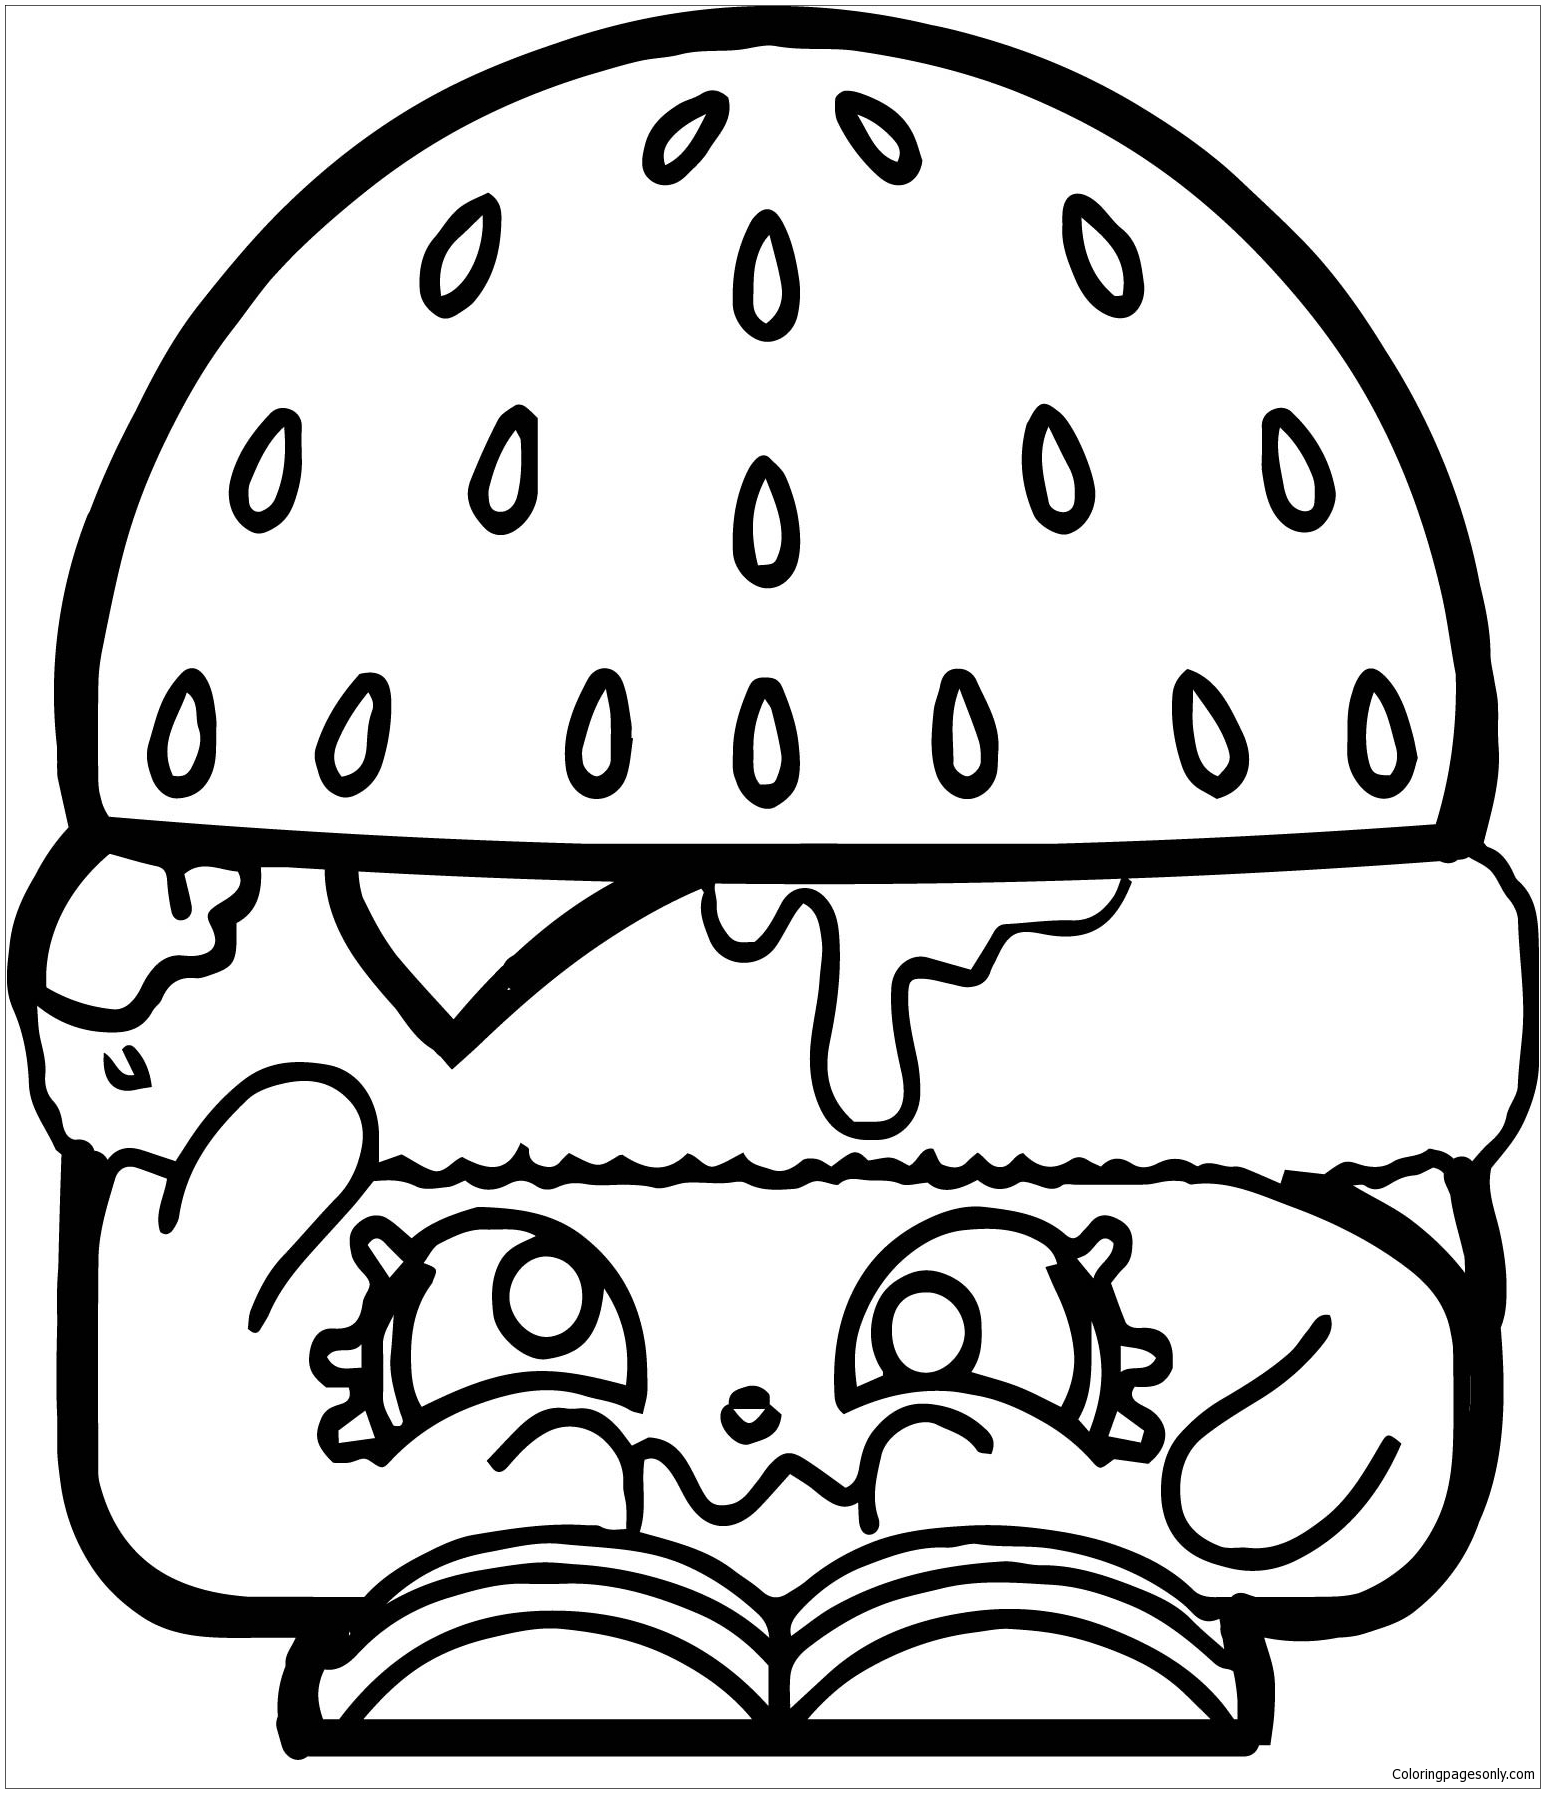 - Hamburger Of Shopkins Coloring Page - Free Coloring Pages Online